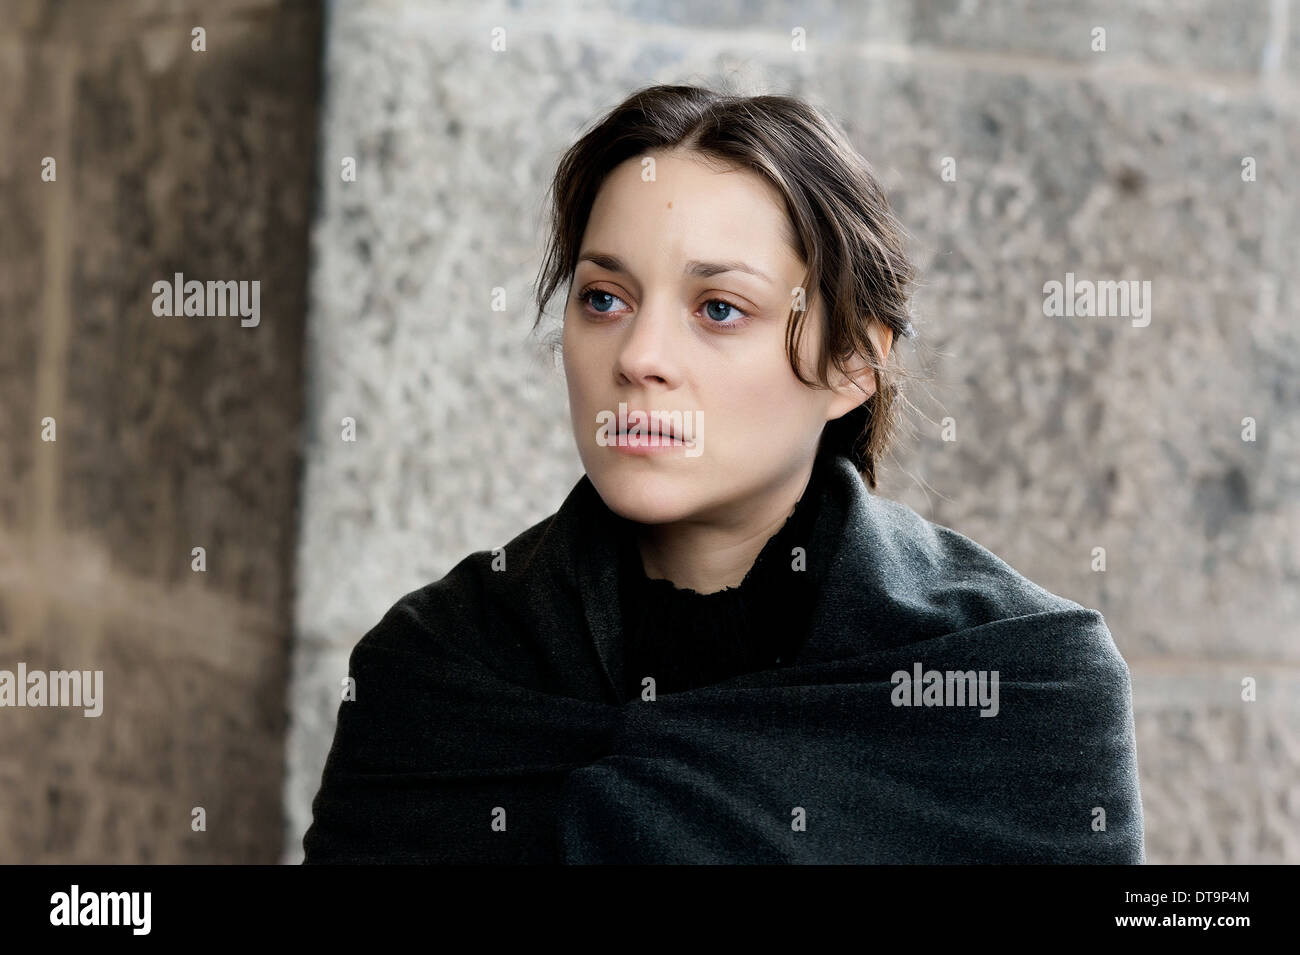 MARION COTILLARD THE IMMIGRANT (2013) - Stock Image